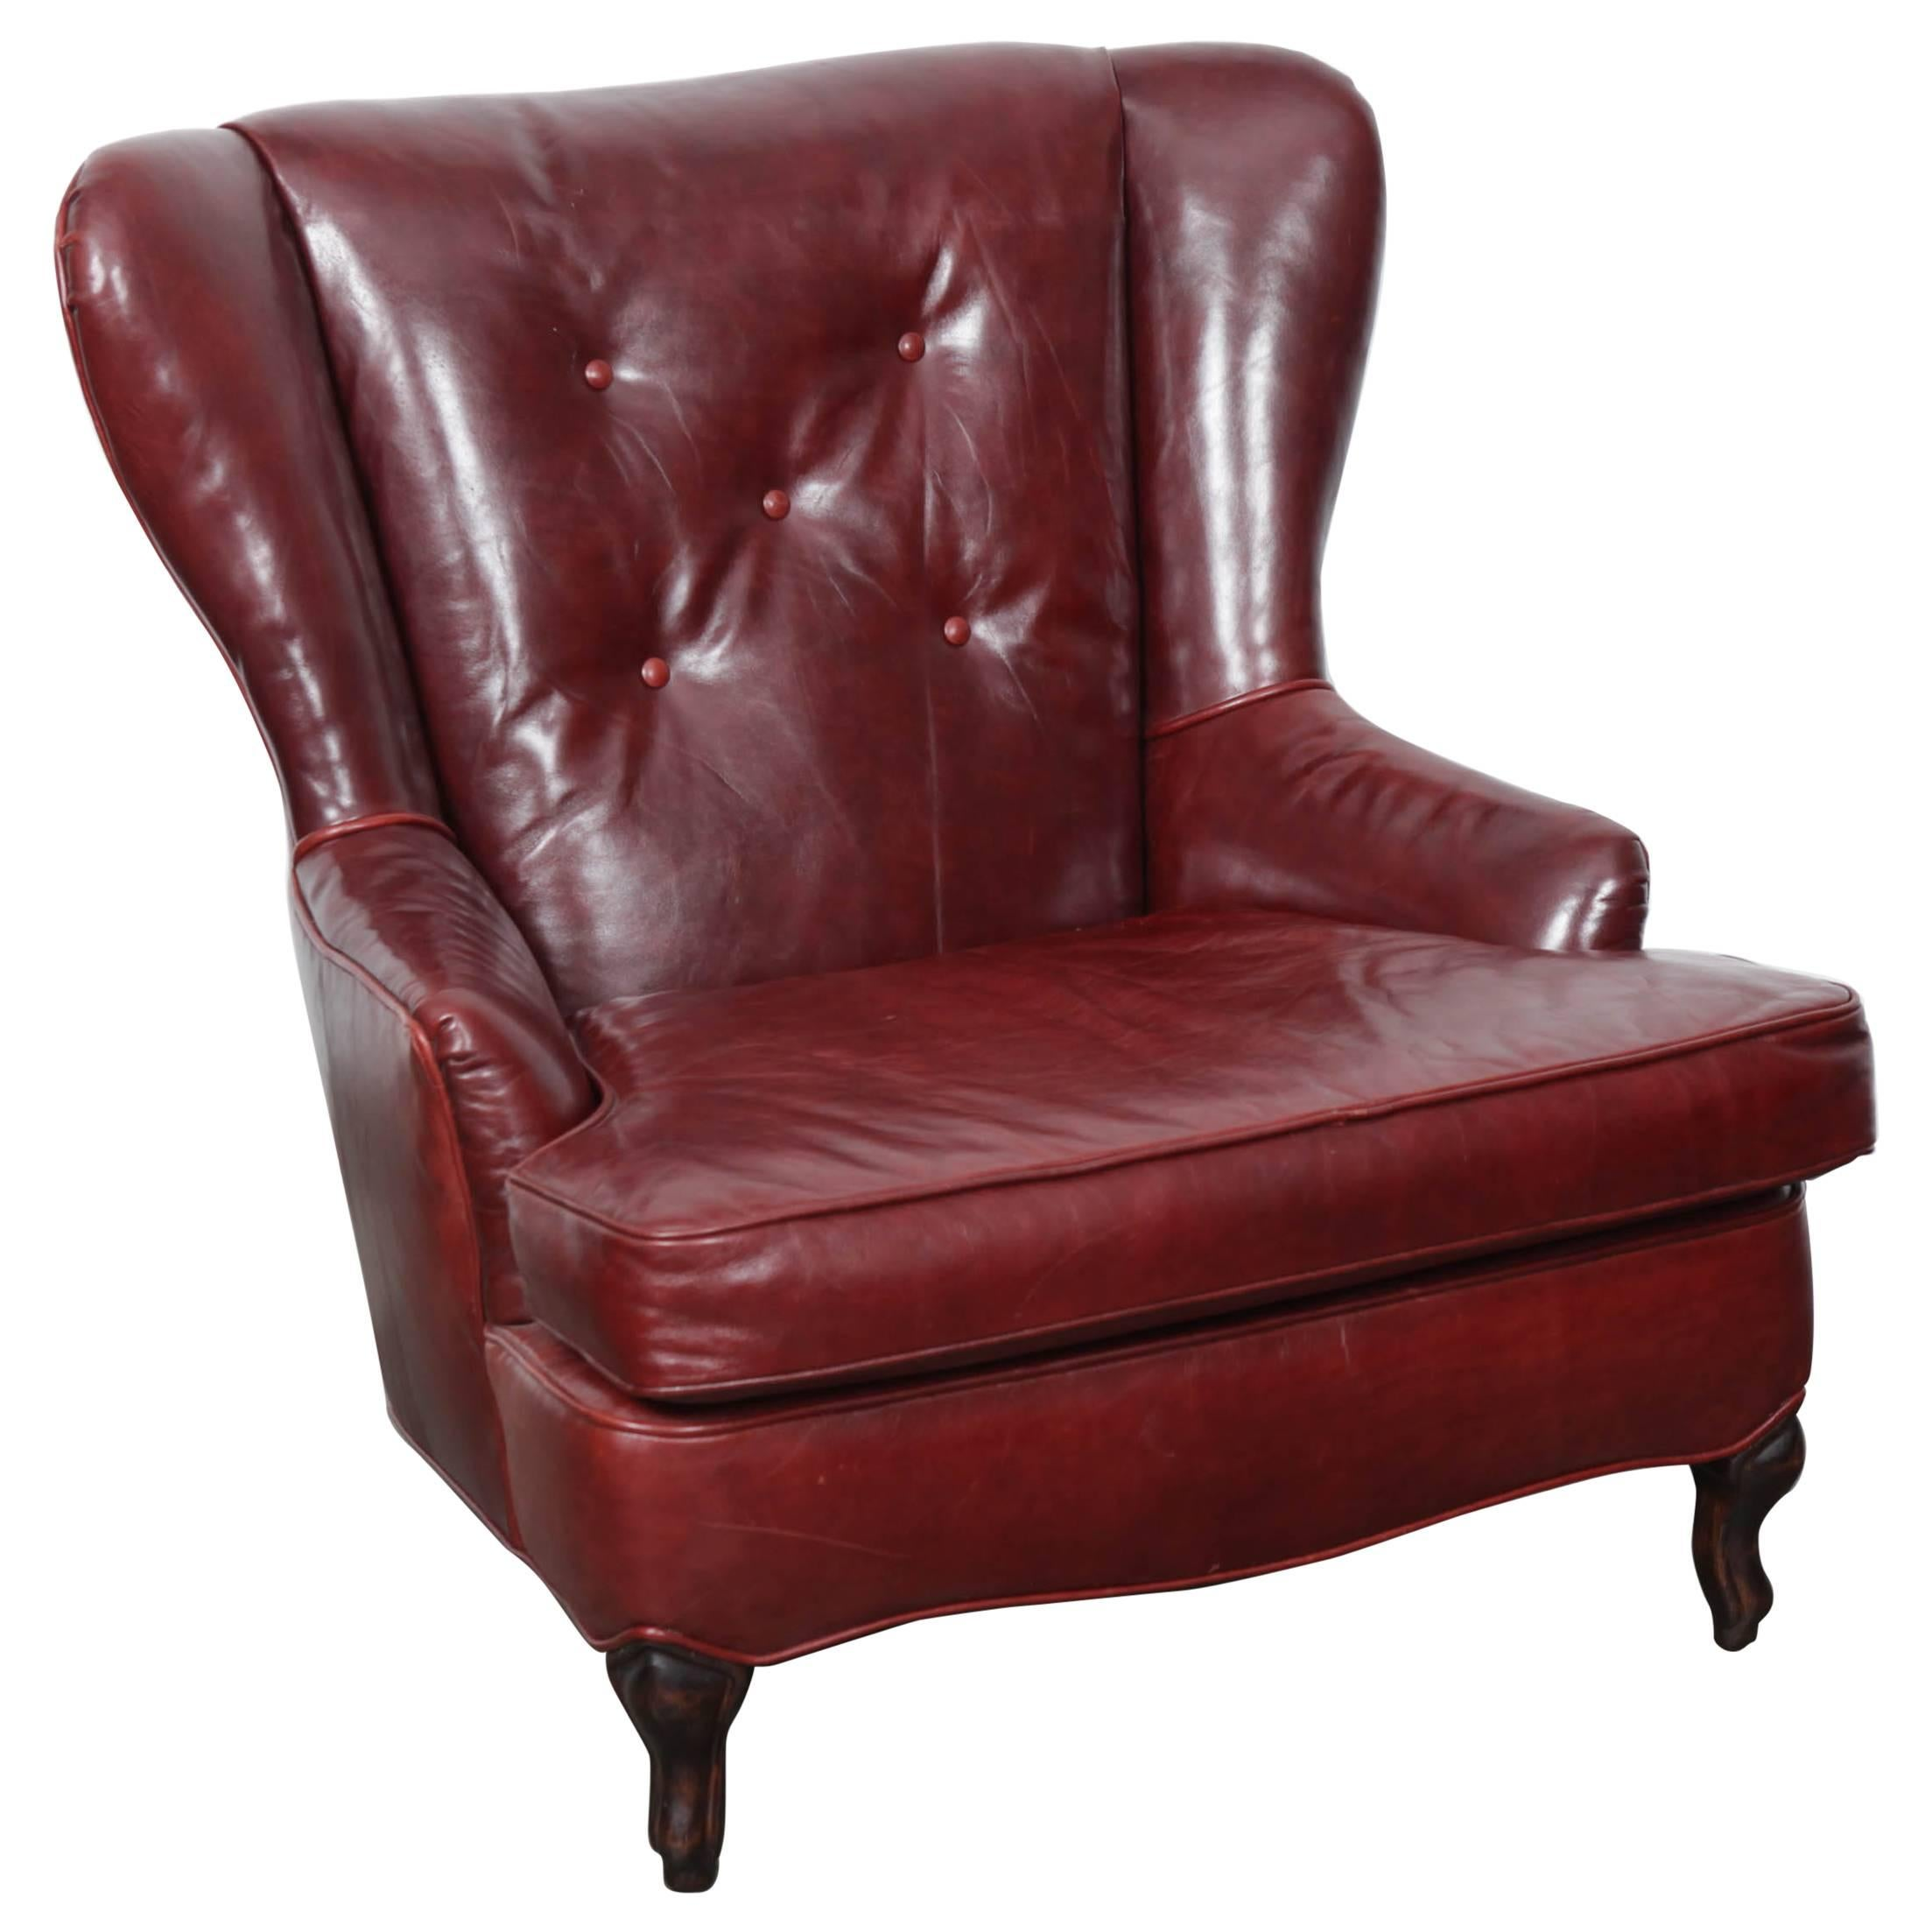 Oxblood Leather Wing Back Button Tufted Lounge Chair For Sale